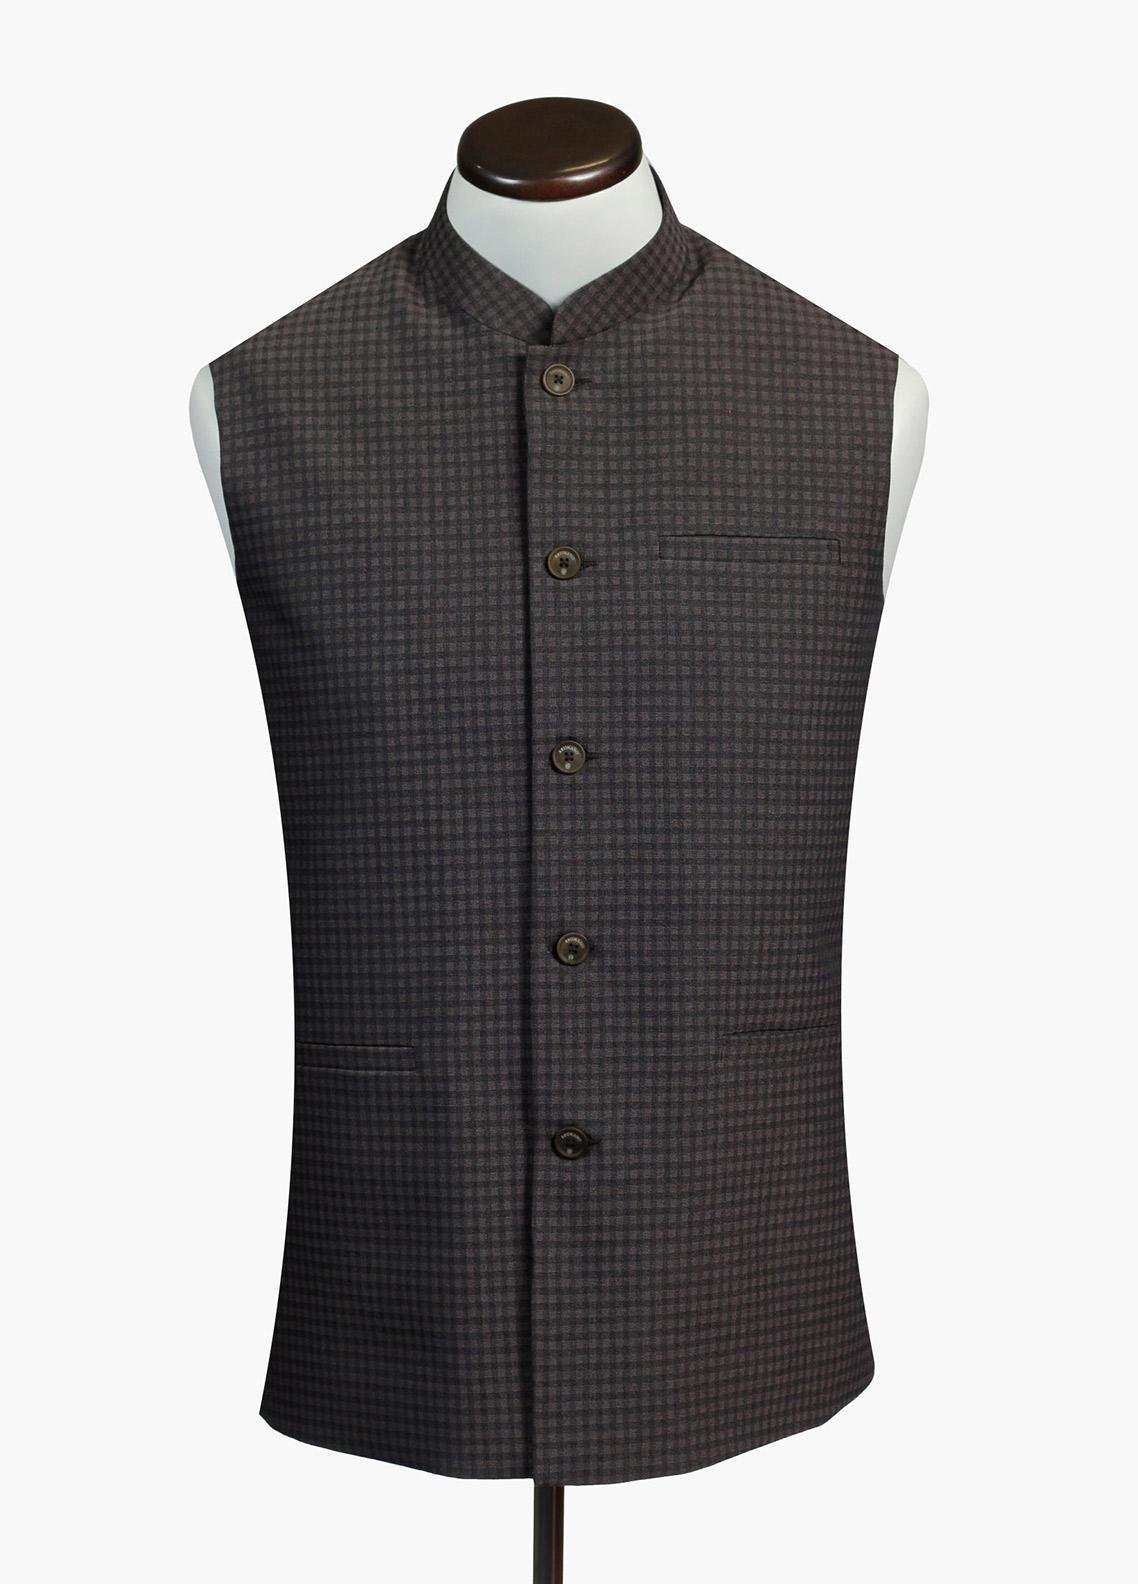 Brumano Cotton Formal Waistcoat for Men - Grey BRM-488